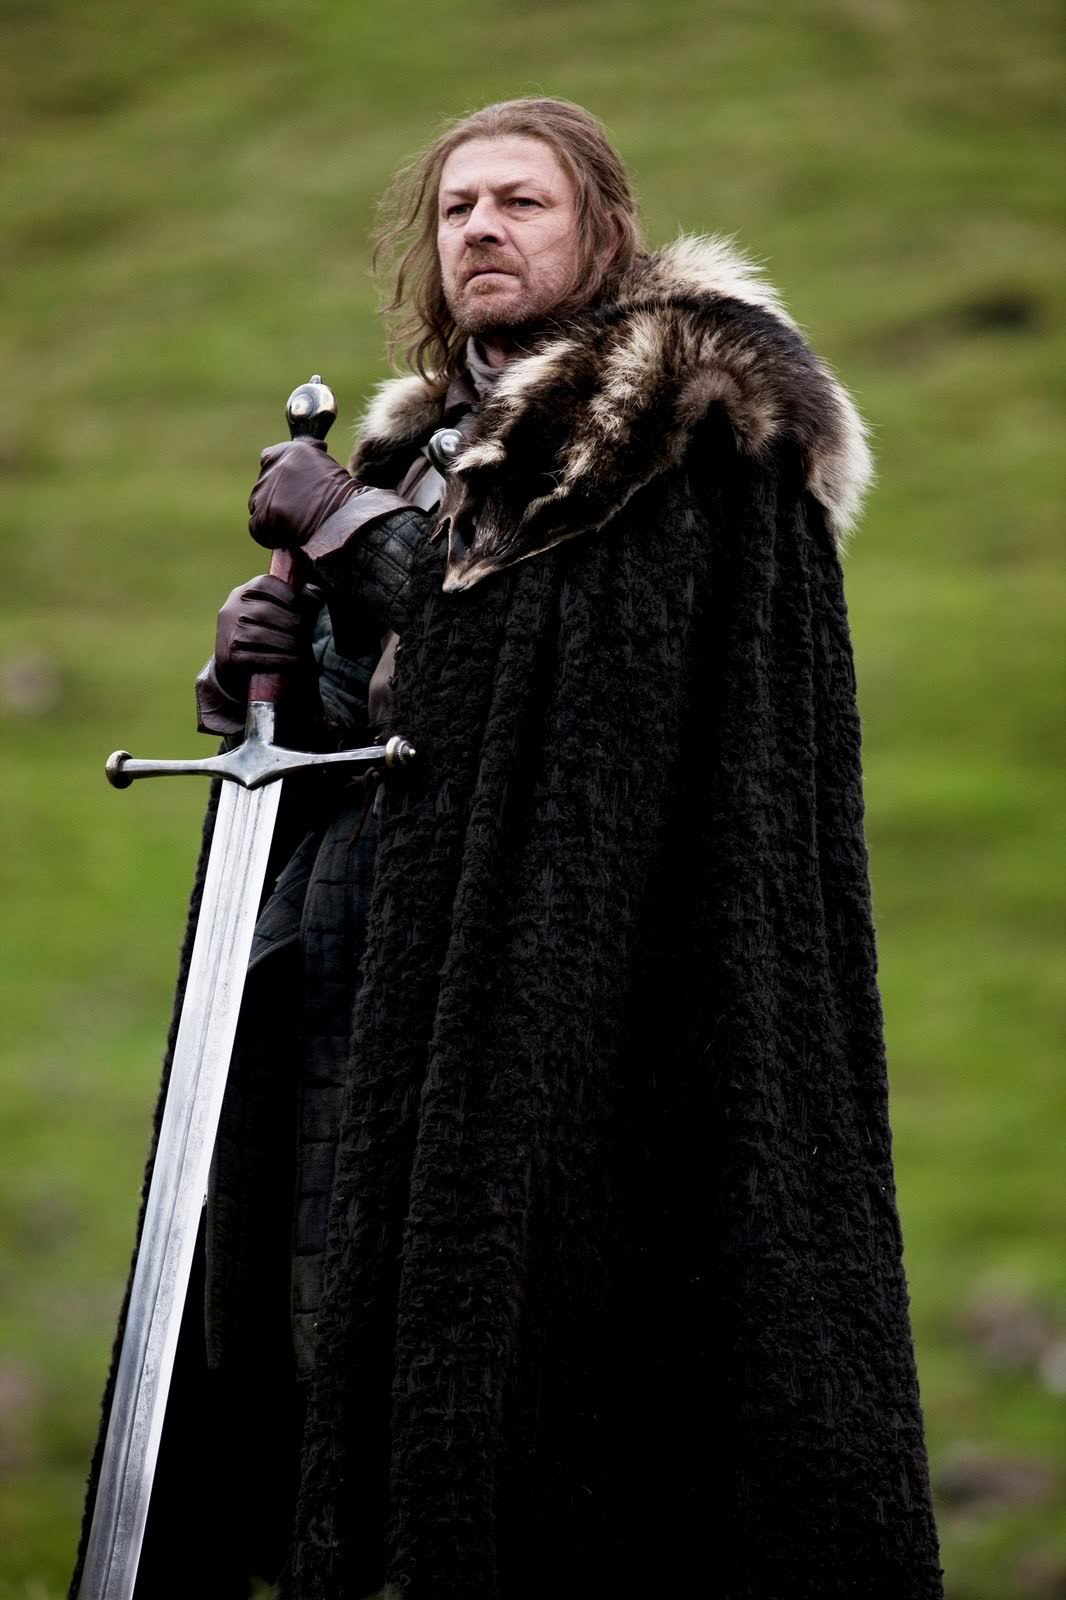 Actor Sean Bean as Lord Eddard Ned Stark in Game of Thrones